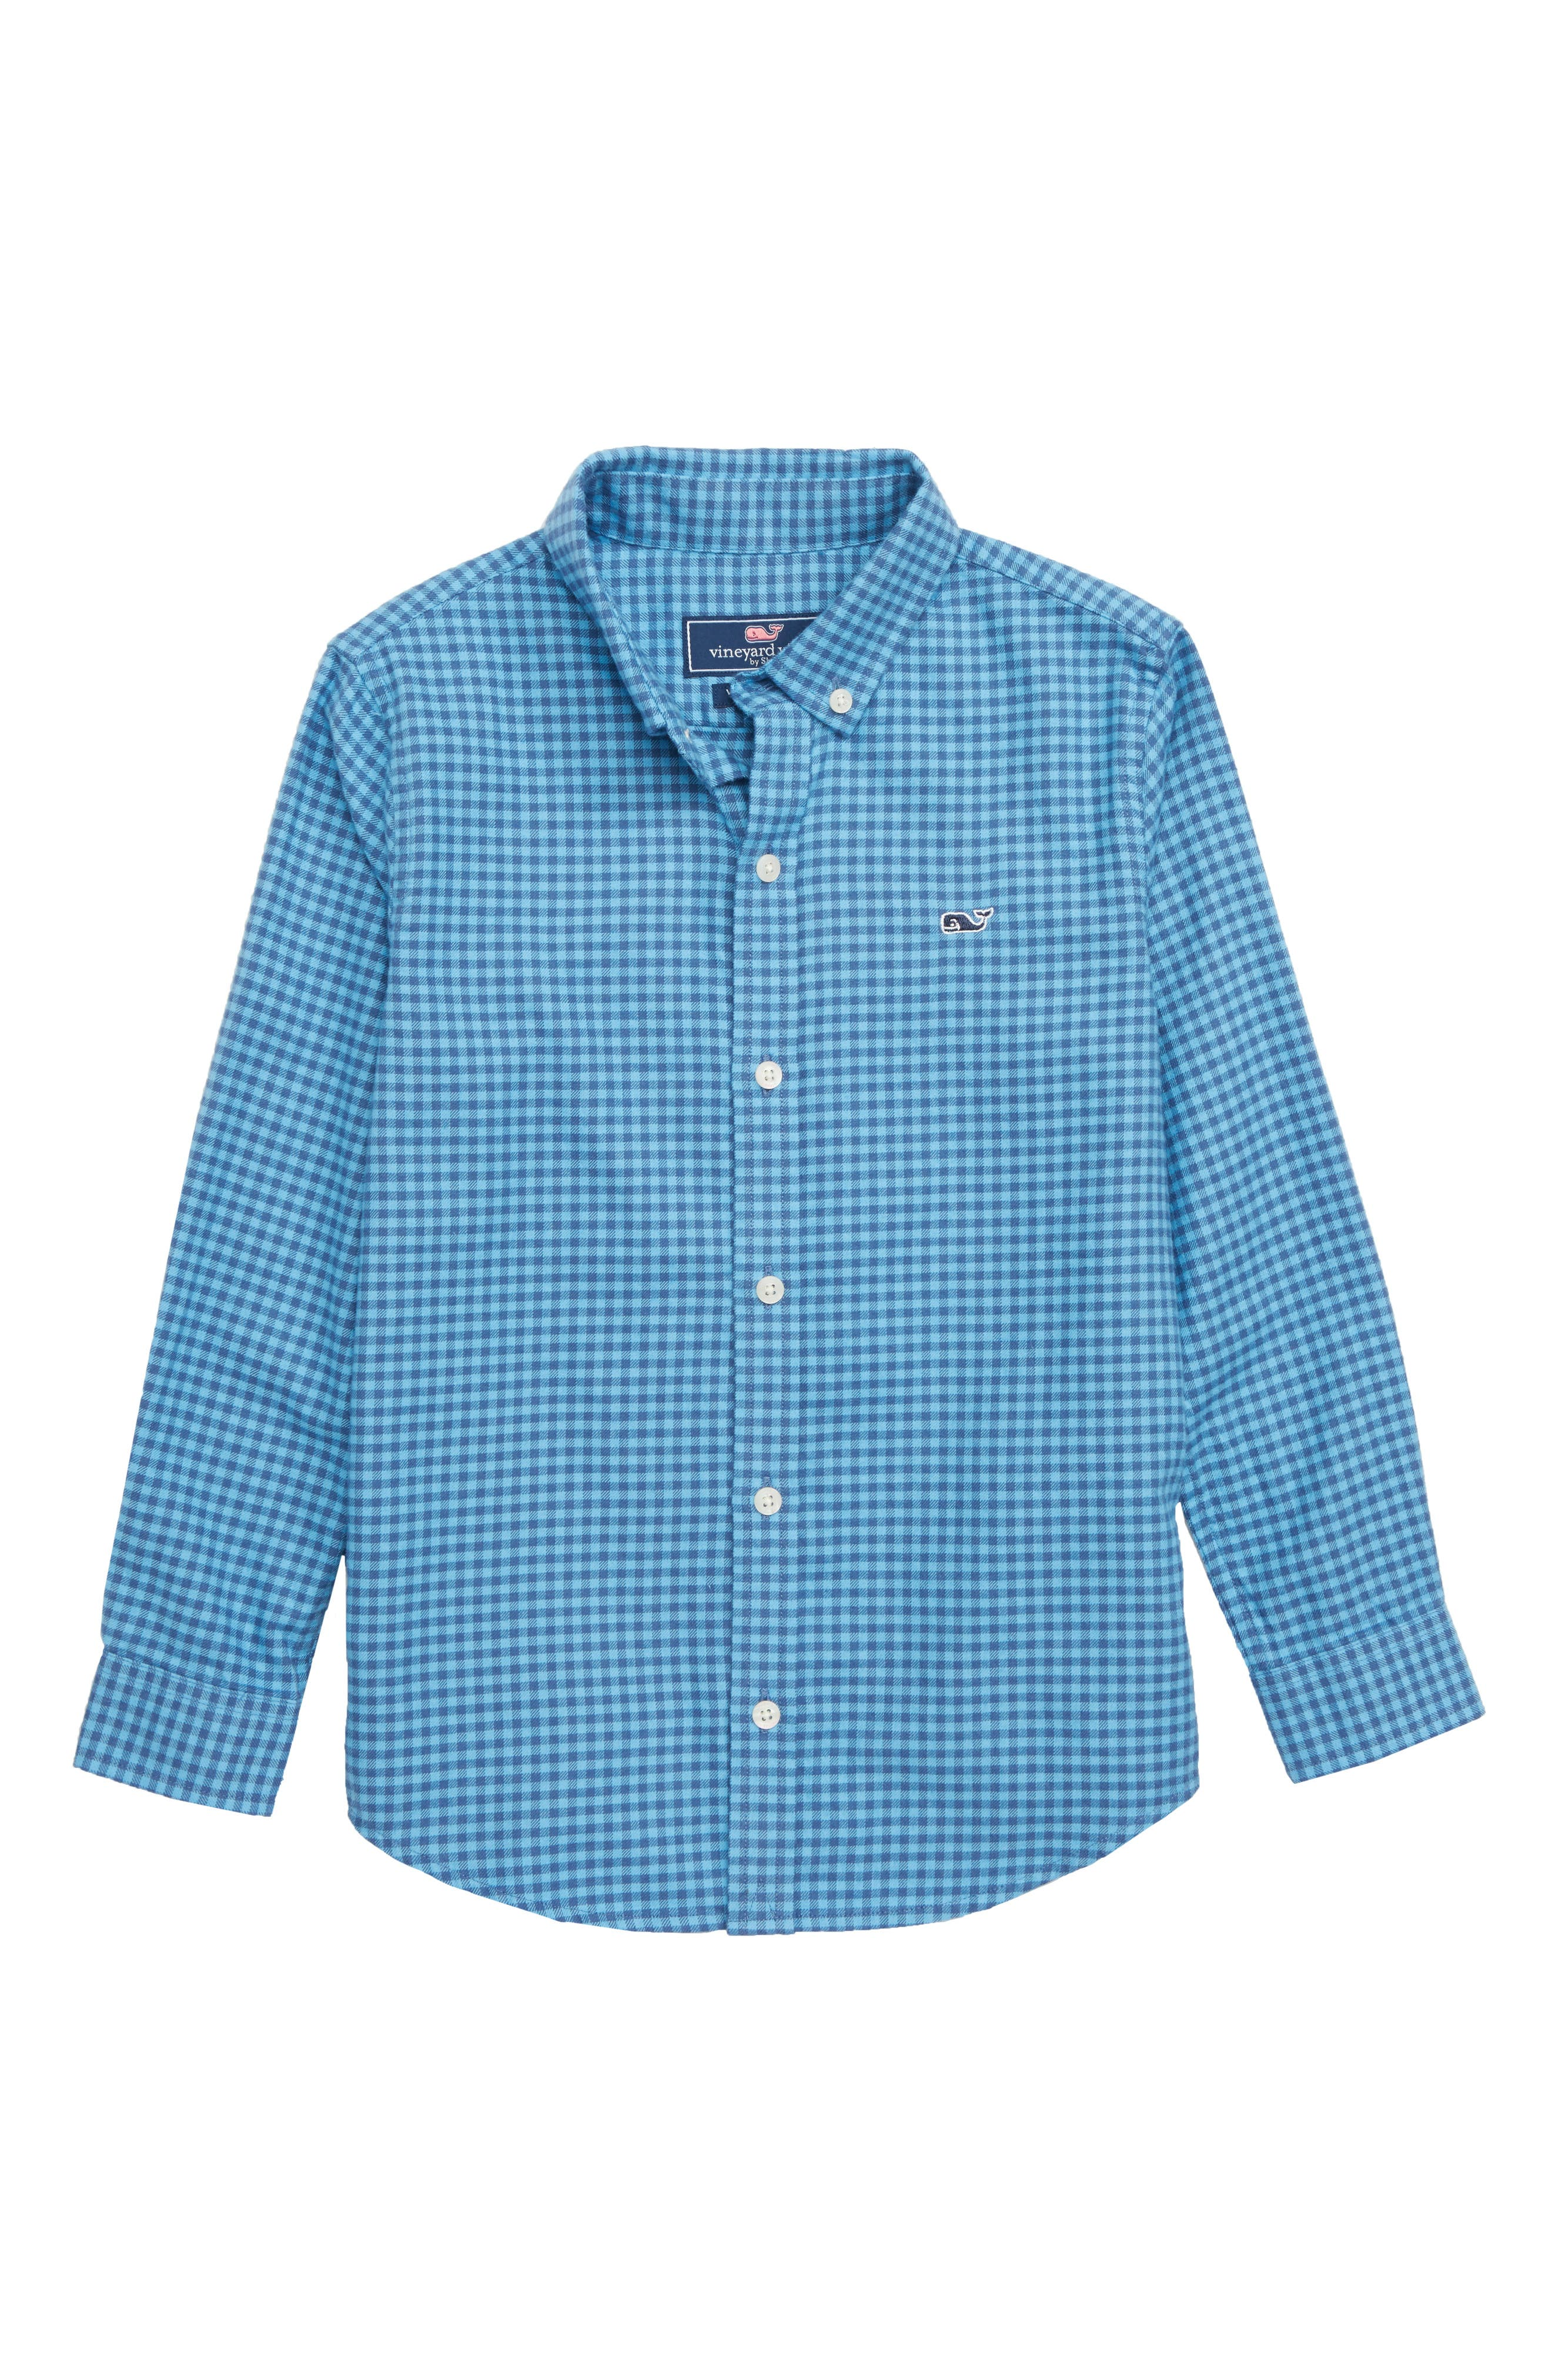 Tradewinds Flannel Whale Shirt,                             Main thumbnail 1, color,                             OCEAN BREEZE